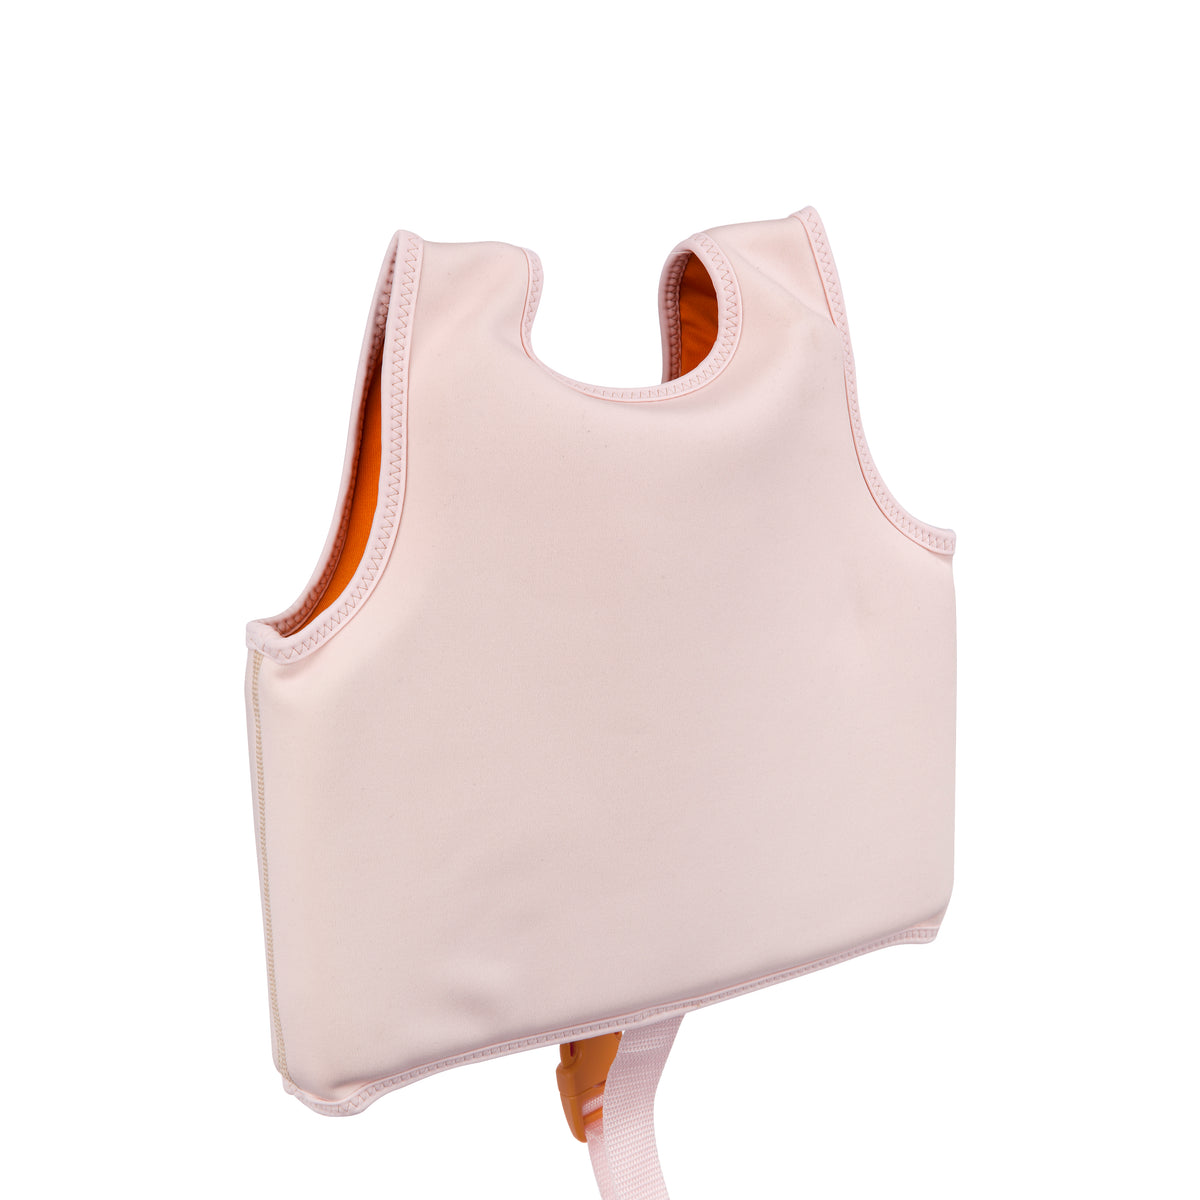 Swim Vest 1-2 Years | Desert Palms - Powder Pink